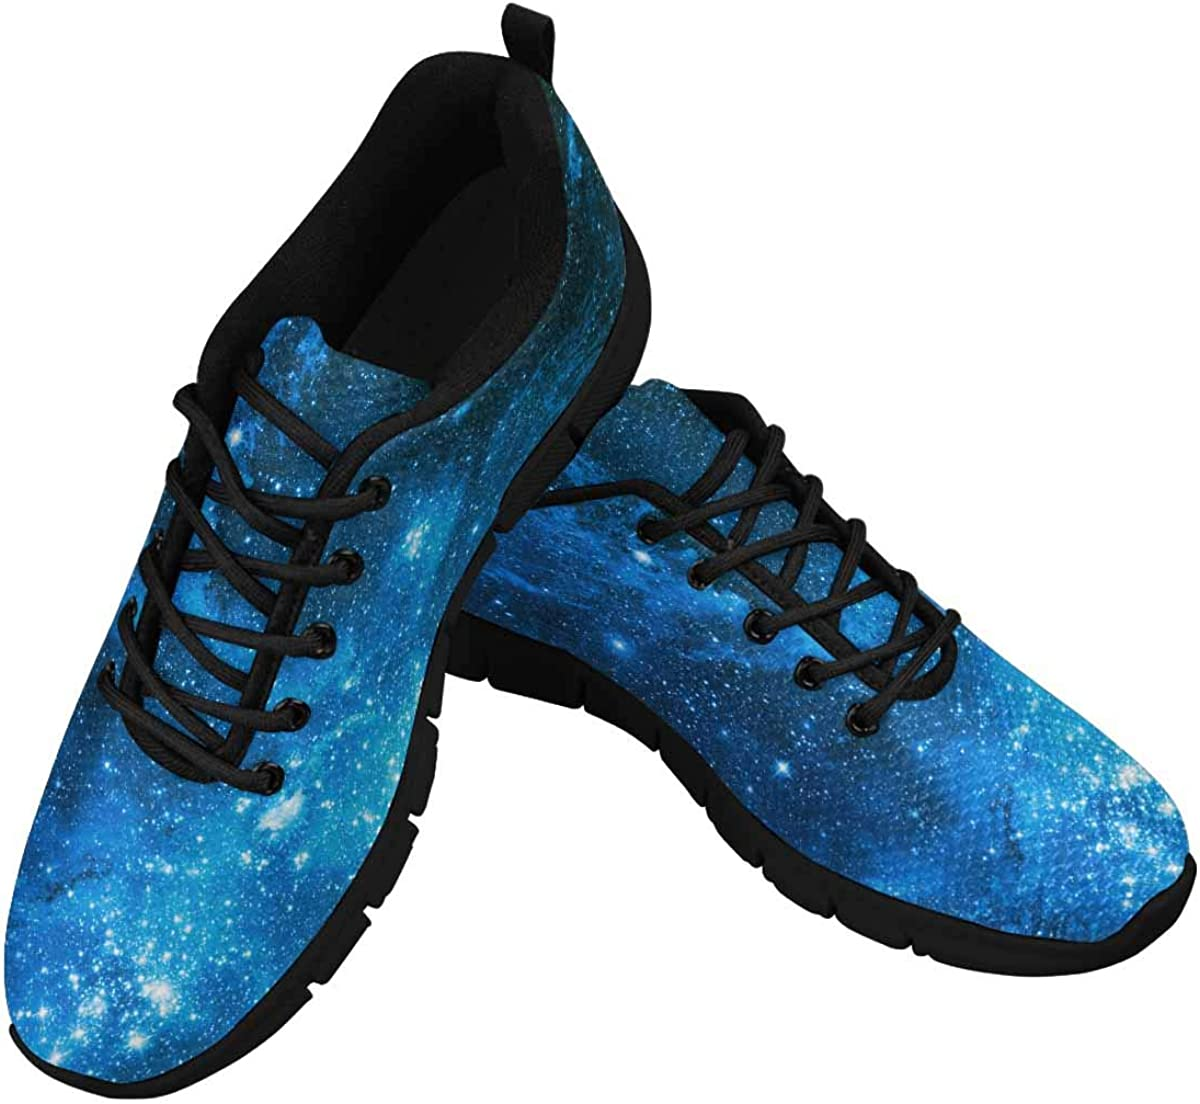 INTERESTPRINT Galaxy Stars Nebula Women's Athletic Mesh Breathable Casual Sneakers Fashion Tennis Shoes